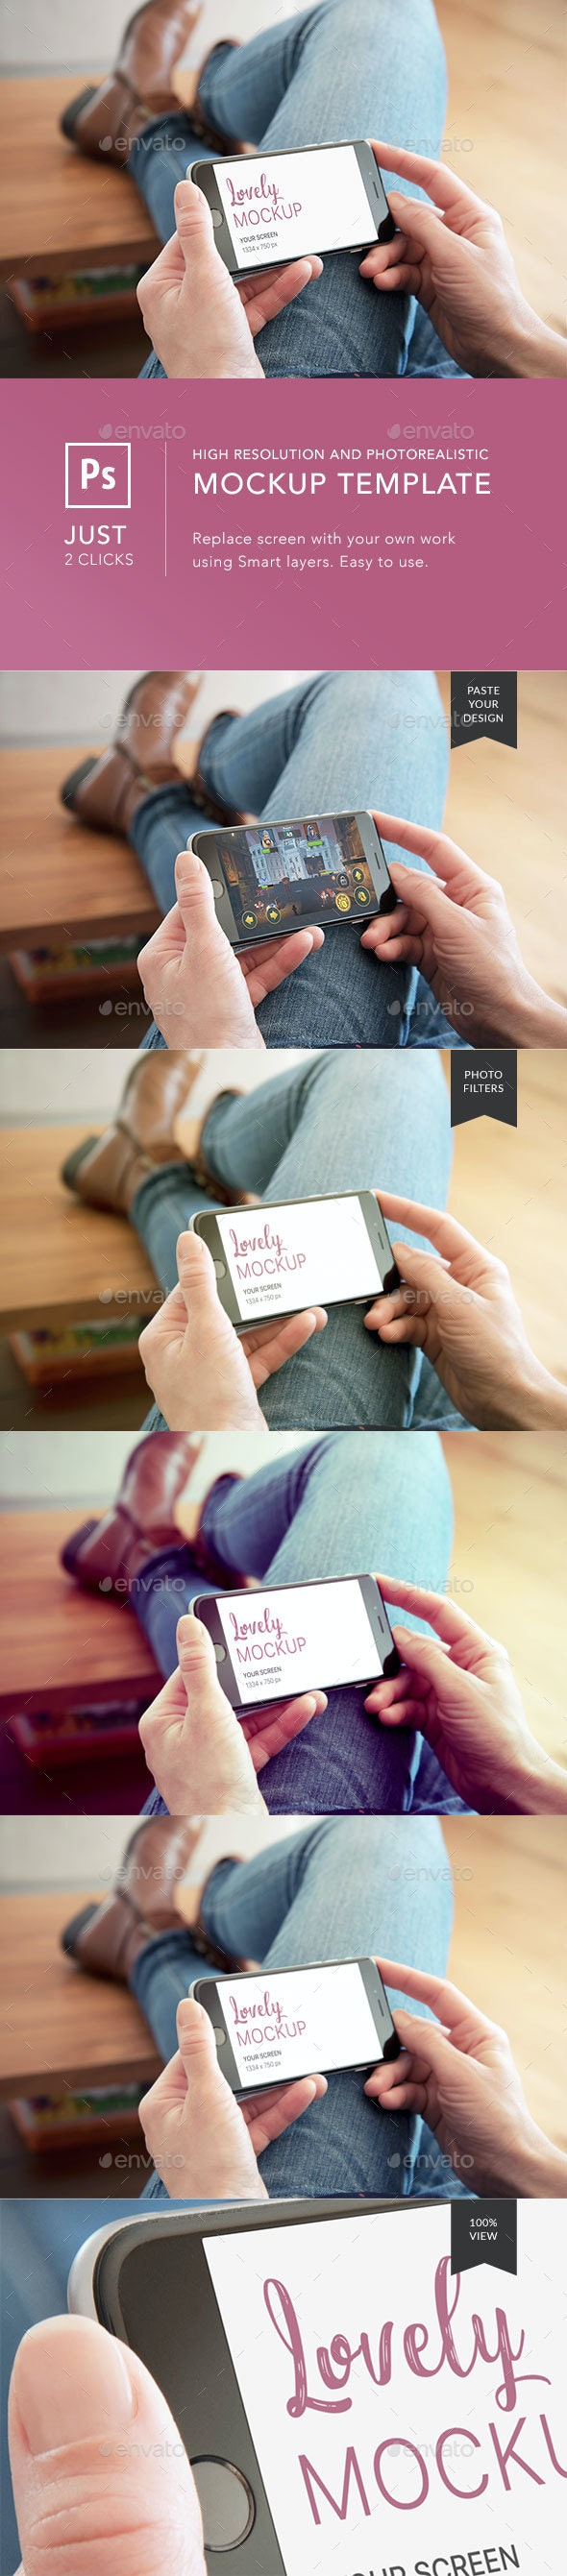 Black Smart Phone Mockup And Woman Reading News in Landscape Mode - Mobile Displays